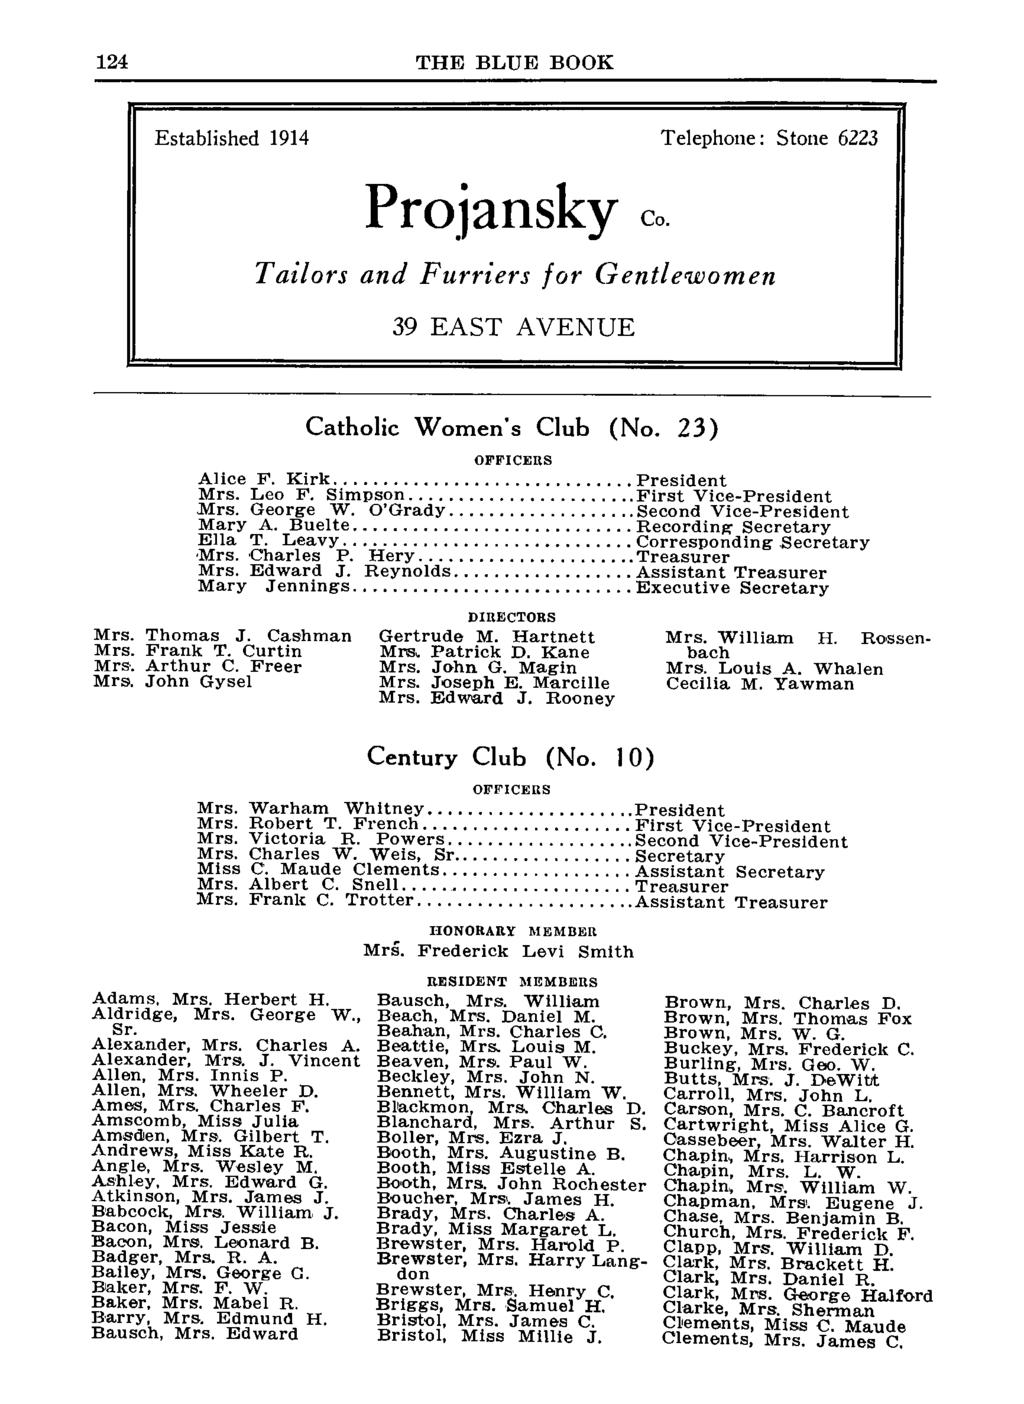 124 THE BLUE BOOK Established 1914 Telephone: Stone 6223 Projansky Co. Tailors and Furriers for Gentlewomen 39 EAST AVENUE Catholic Women's Club (No. 23) OFFICERS Alice F. Kirk President Mrs. Leo F.